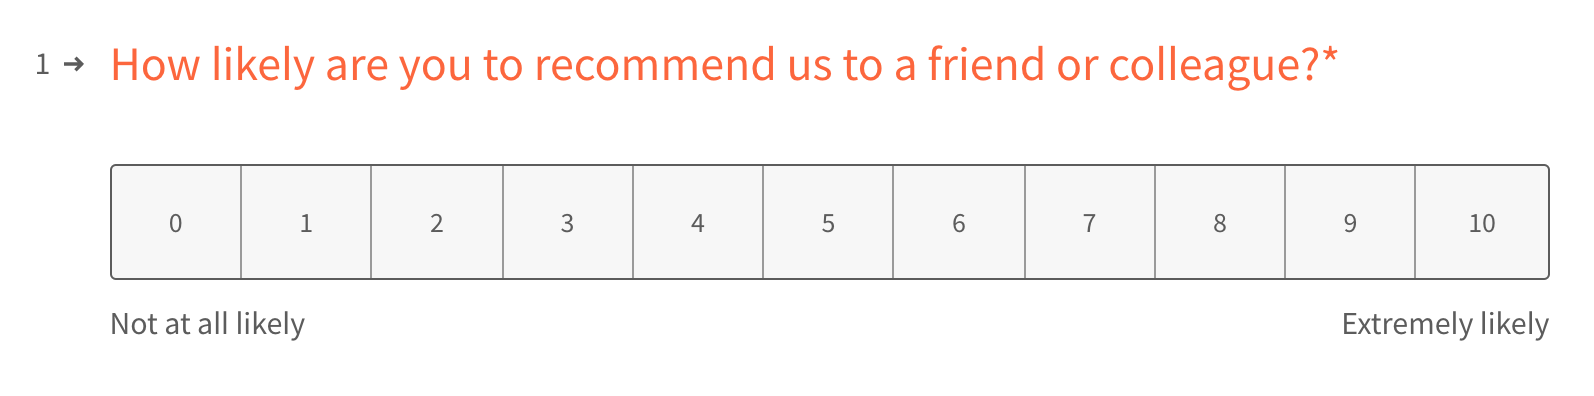 nps-refresher-first-question.png